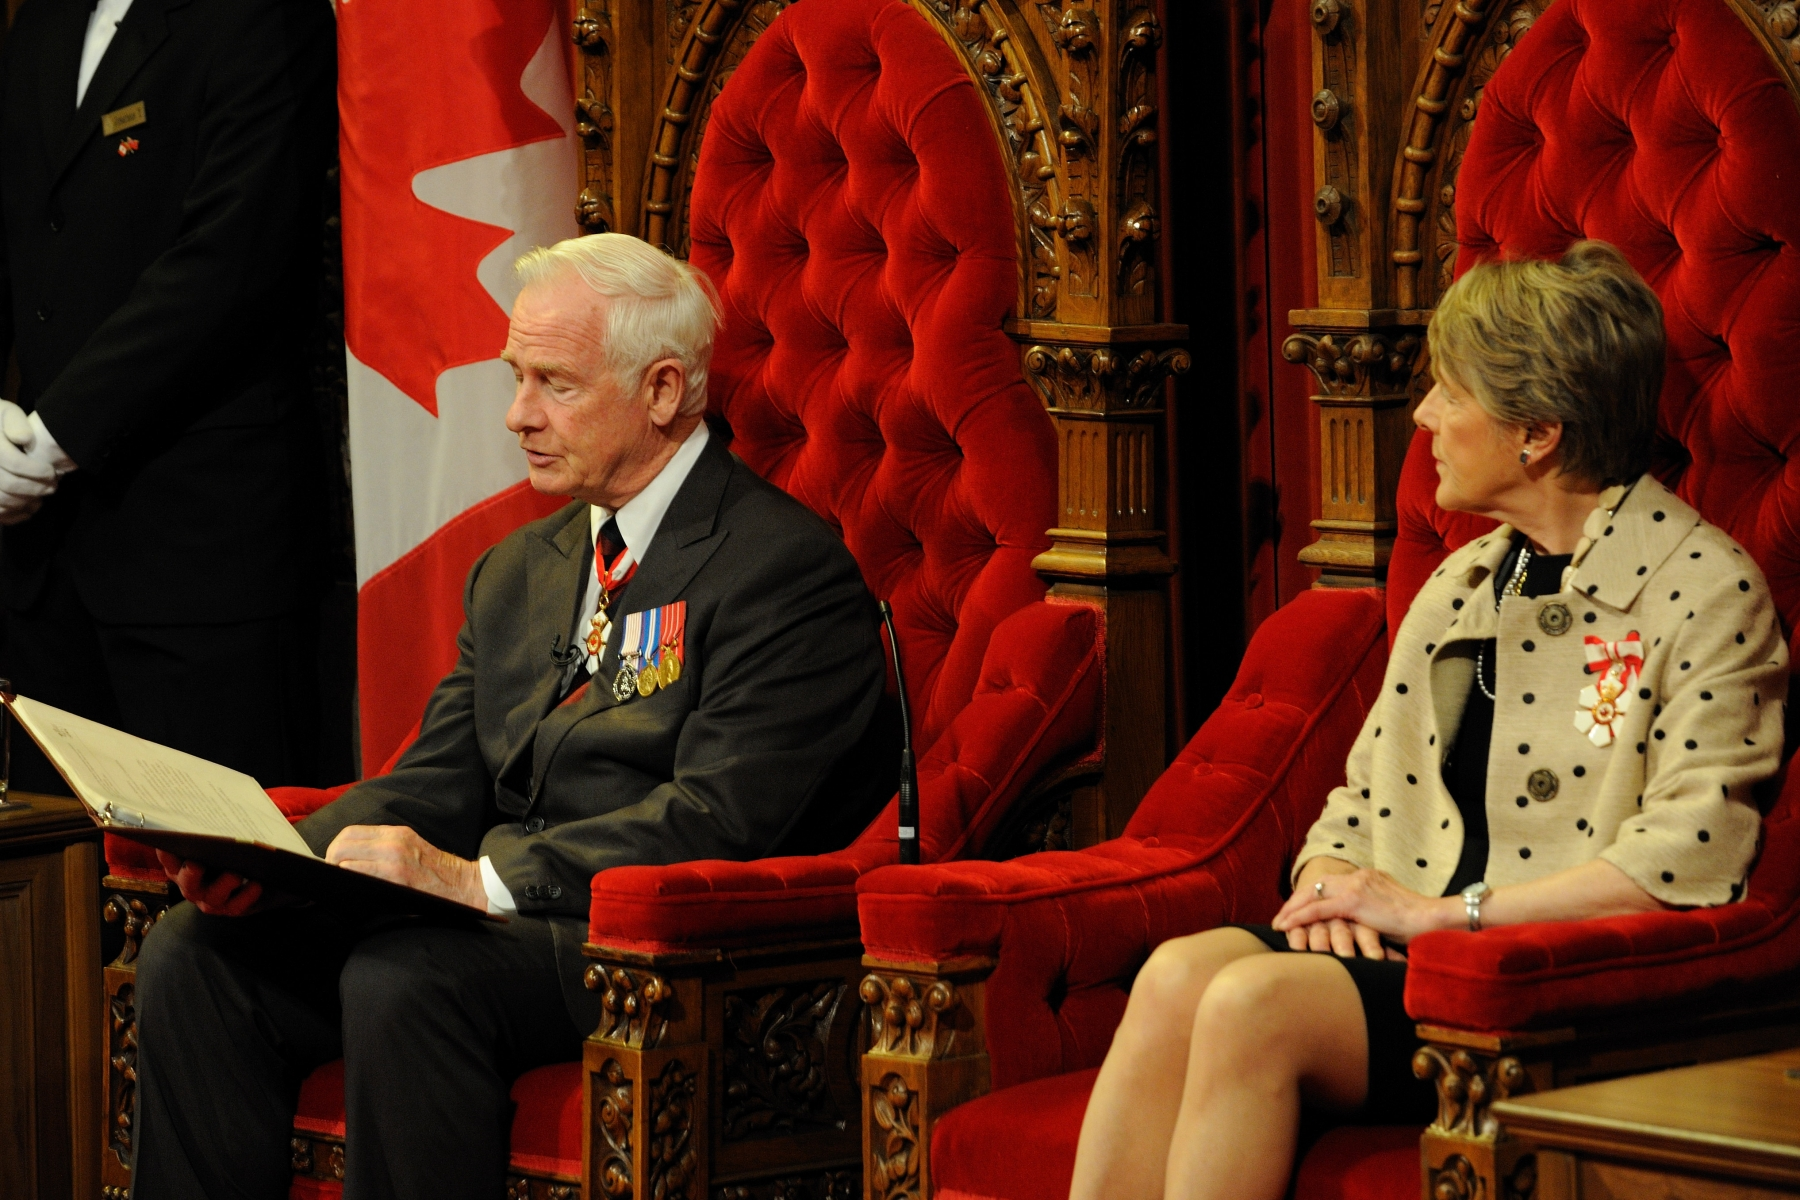 Her Excellency Sharon Johnston was in attendance for the lecture. Each new session of Parliament begins with a Speech from the Throne, which officially opens the session. Until the Speech is delivered, no public business may be conducted by either the Senate or the House of Commons.